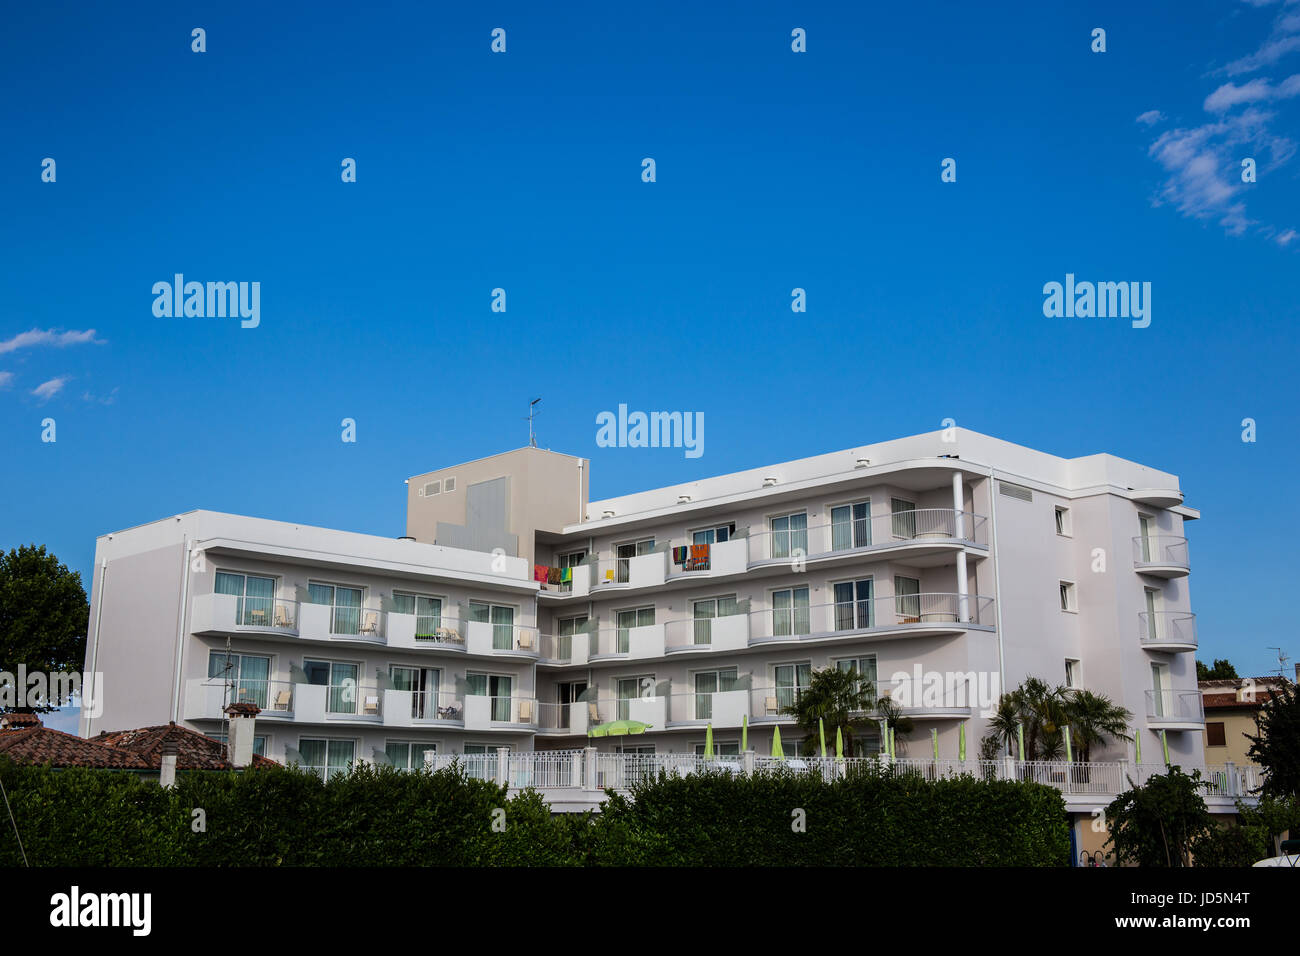 Newly built apartment block with beautiful blue sky in the background. Caorle - Italy - Stock Image